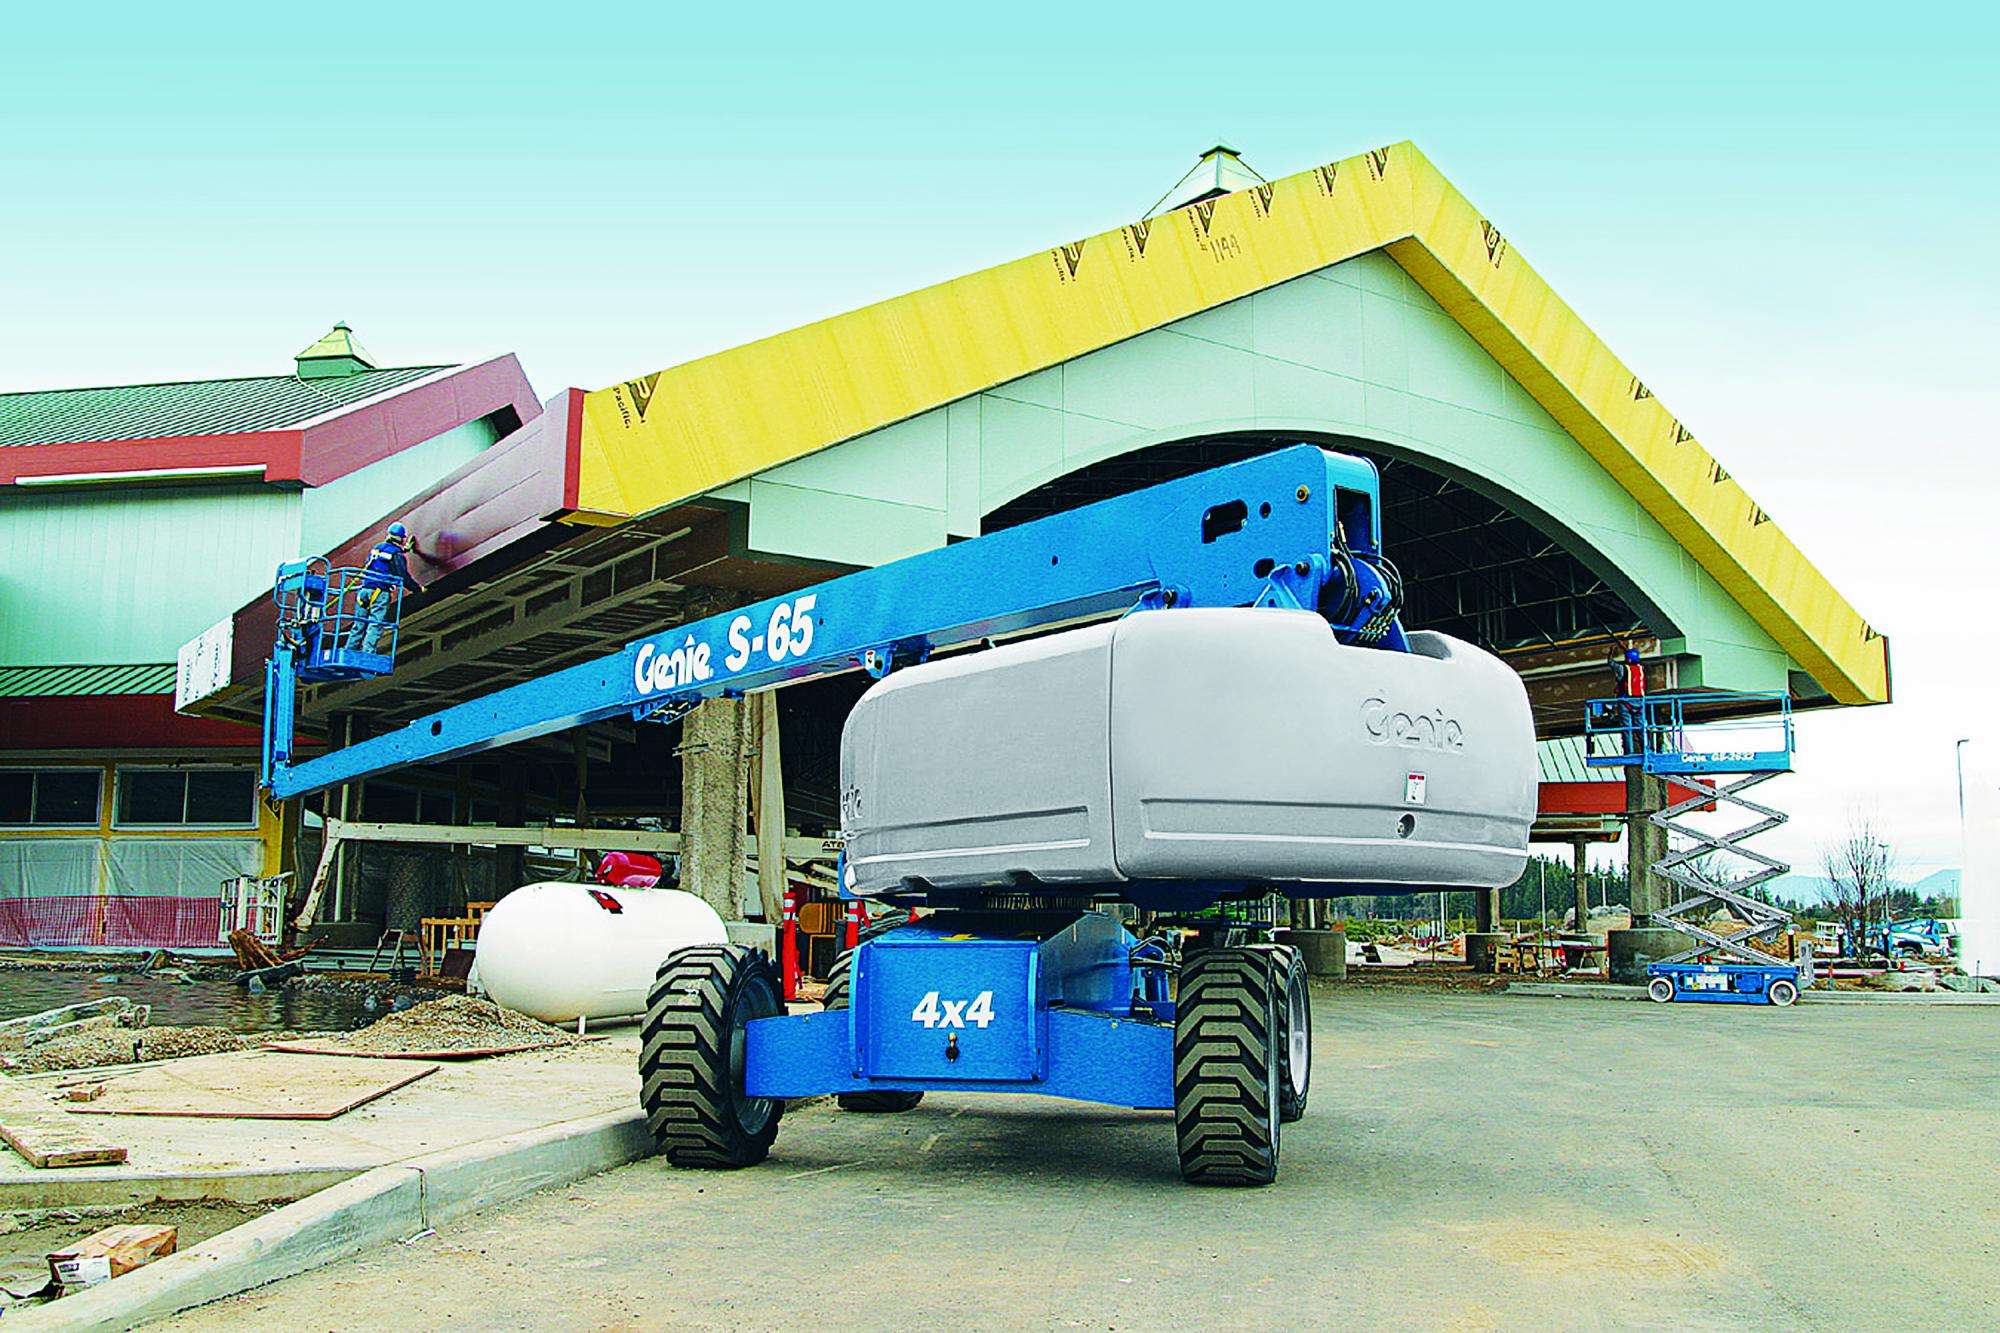 Genie S60 – 20.30 m Telescopic Boom Lift